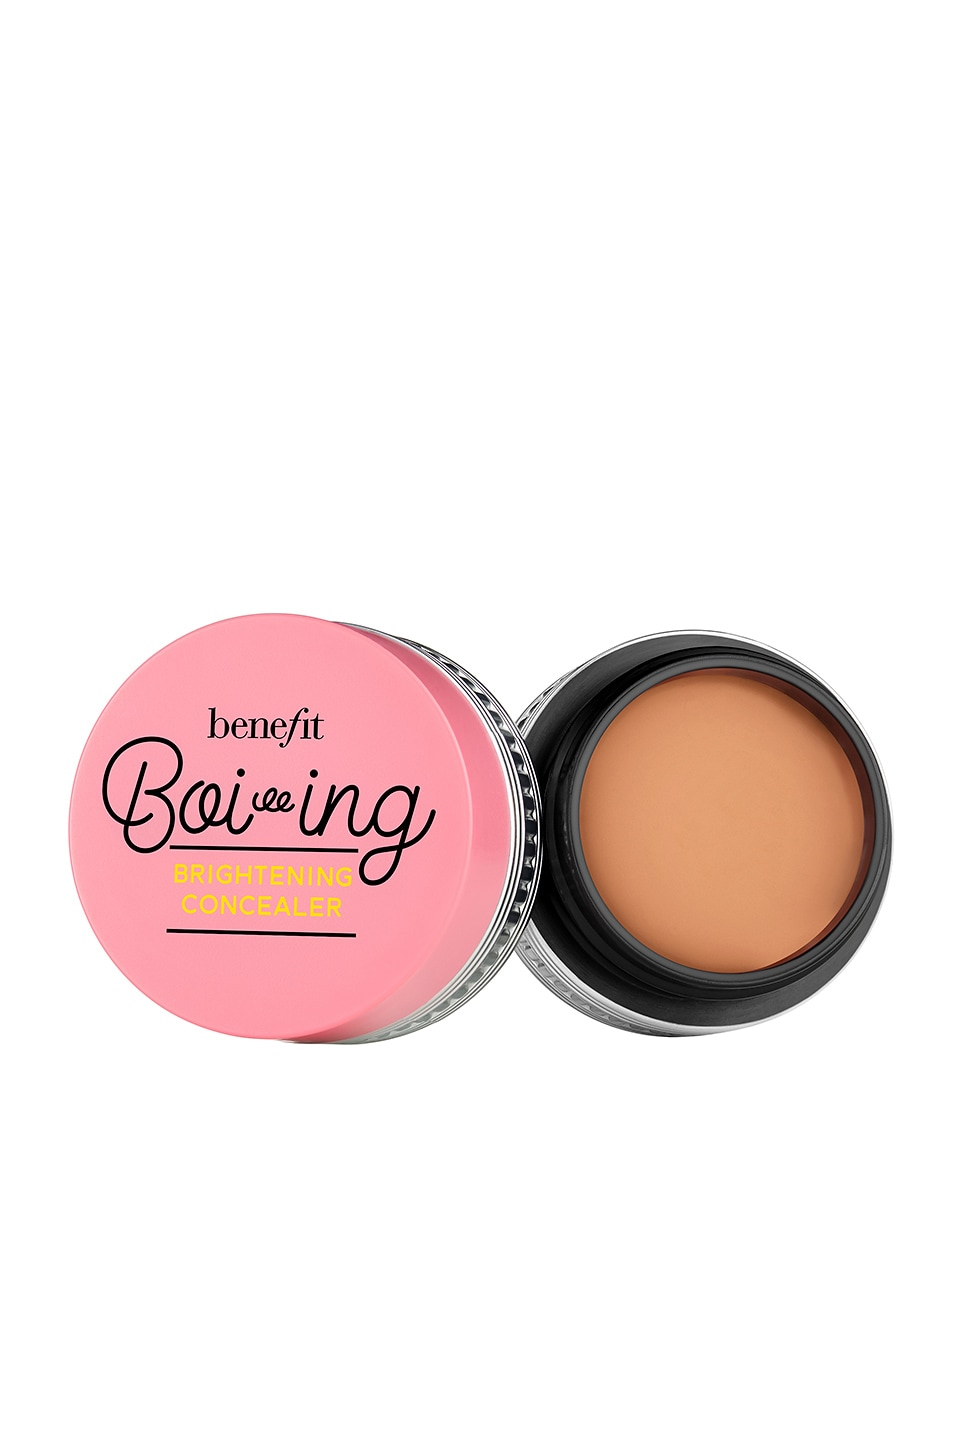 Benefit Cosmetics Boi-ing Brightening Concealer in Medium